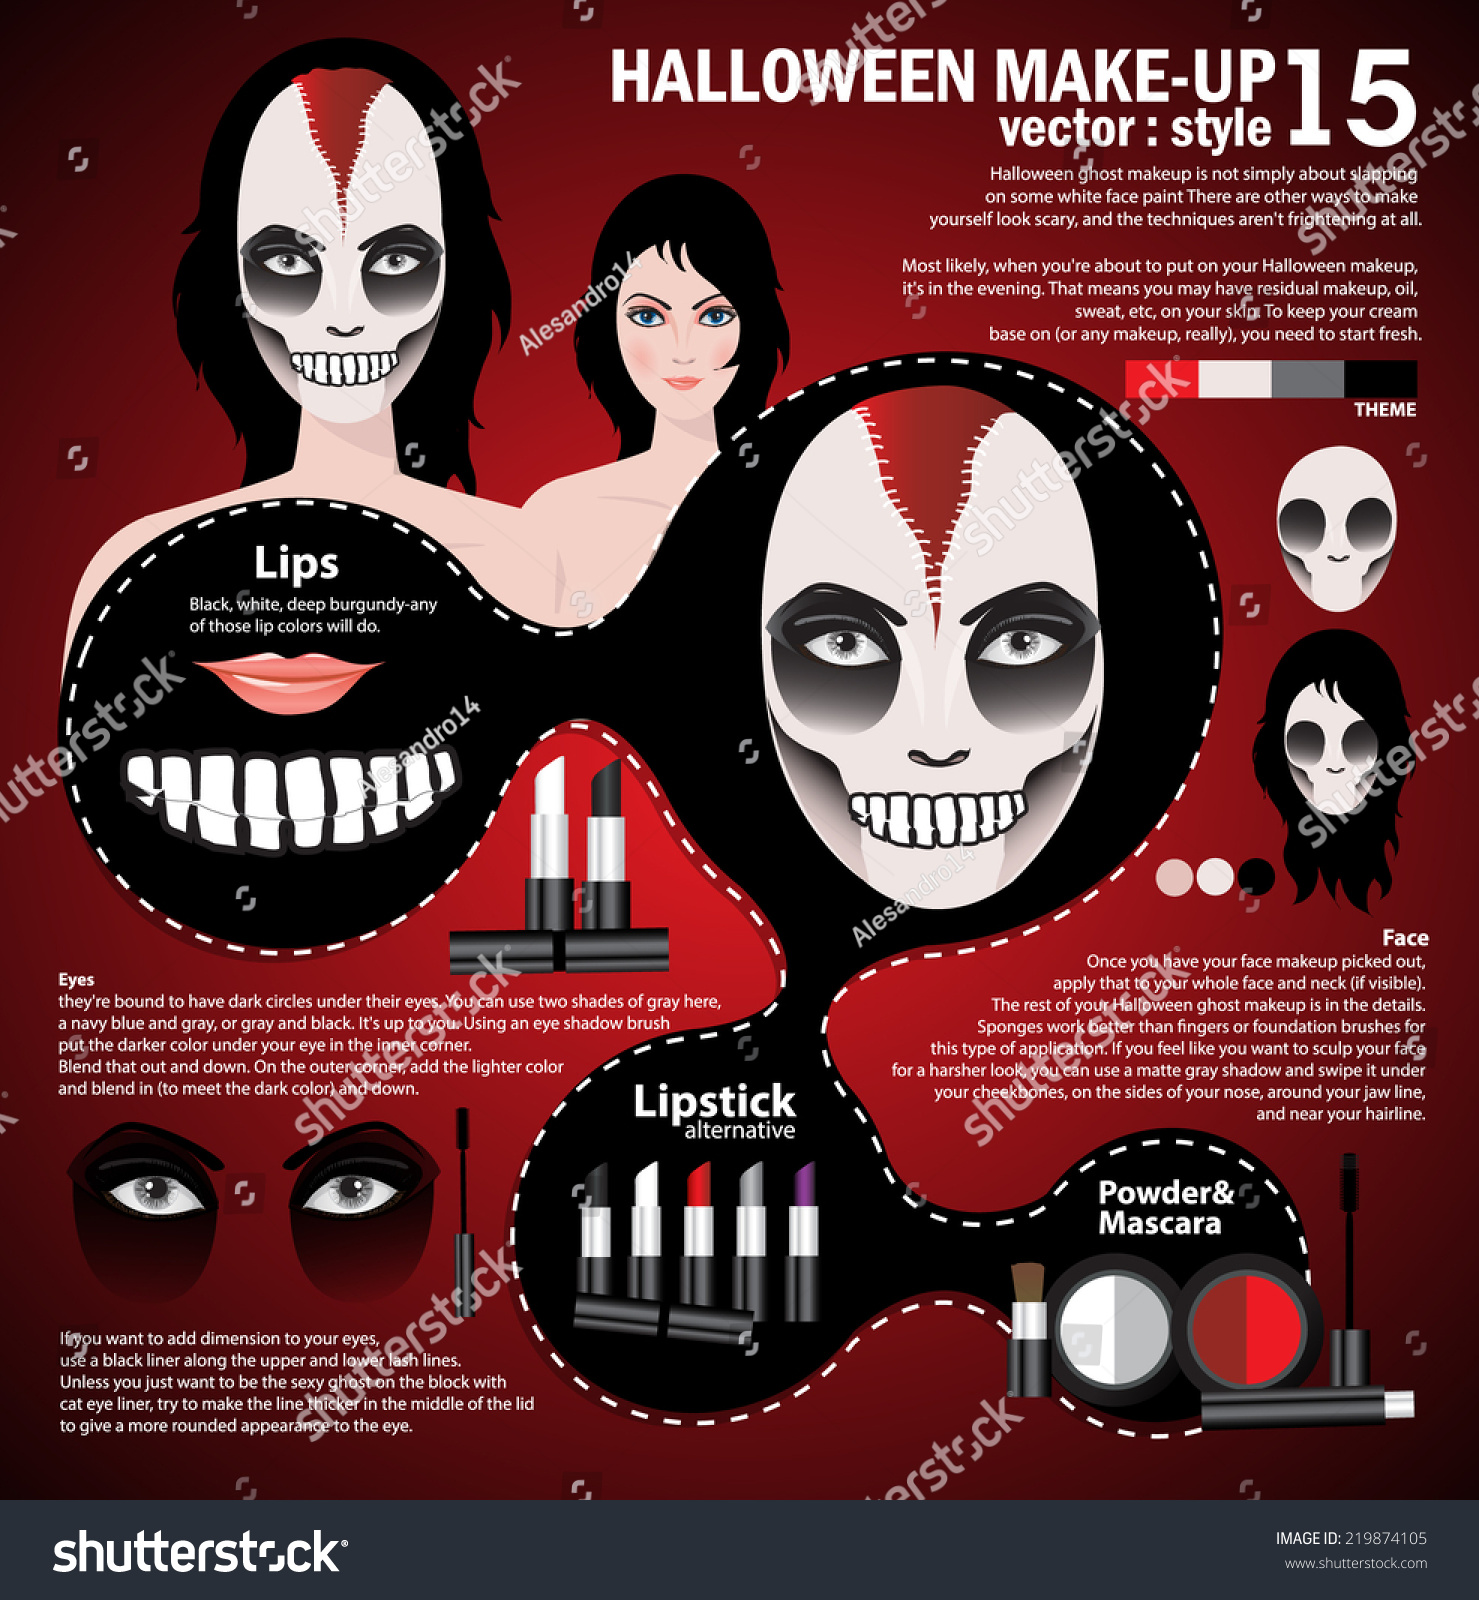 drawing technique makeup halloween face art skull mexican style ez canvas